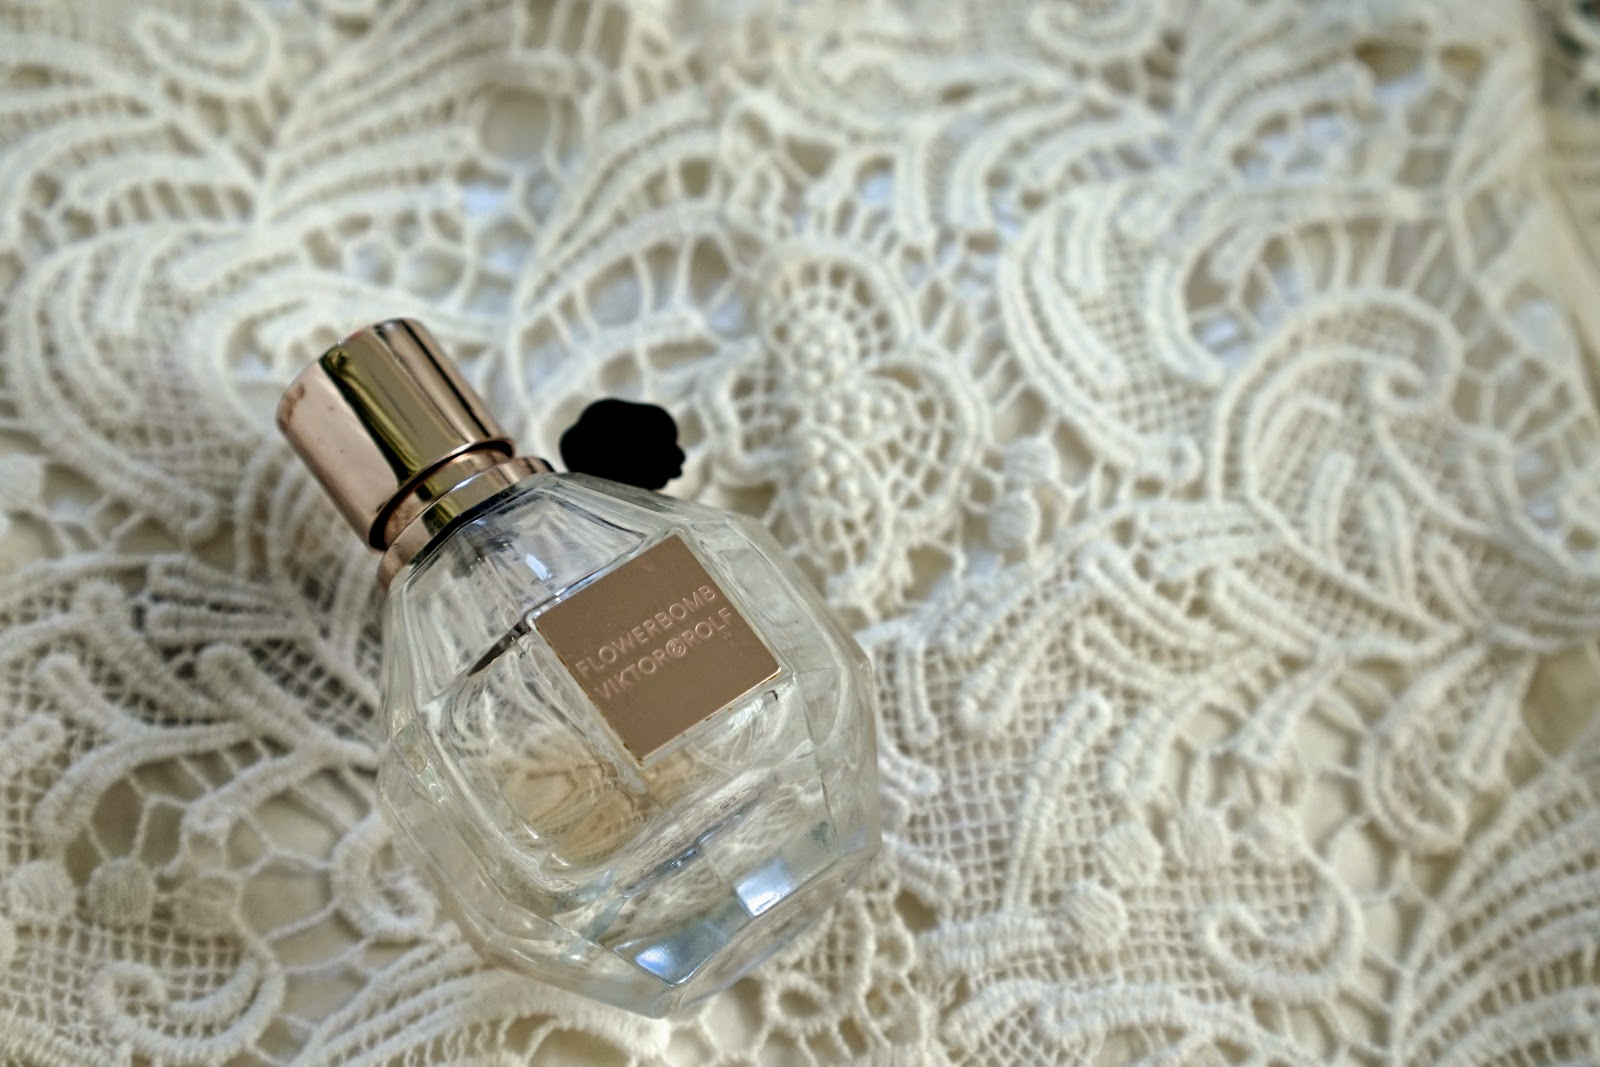 flowerbomb viktor and rolf